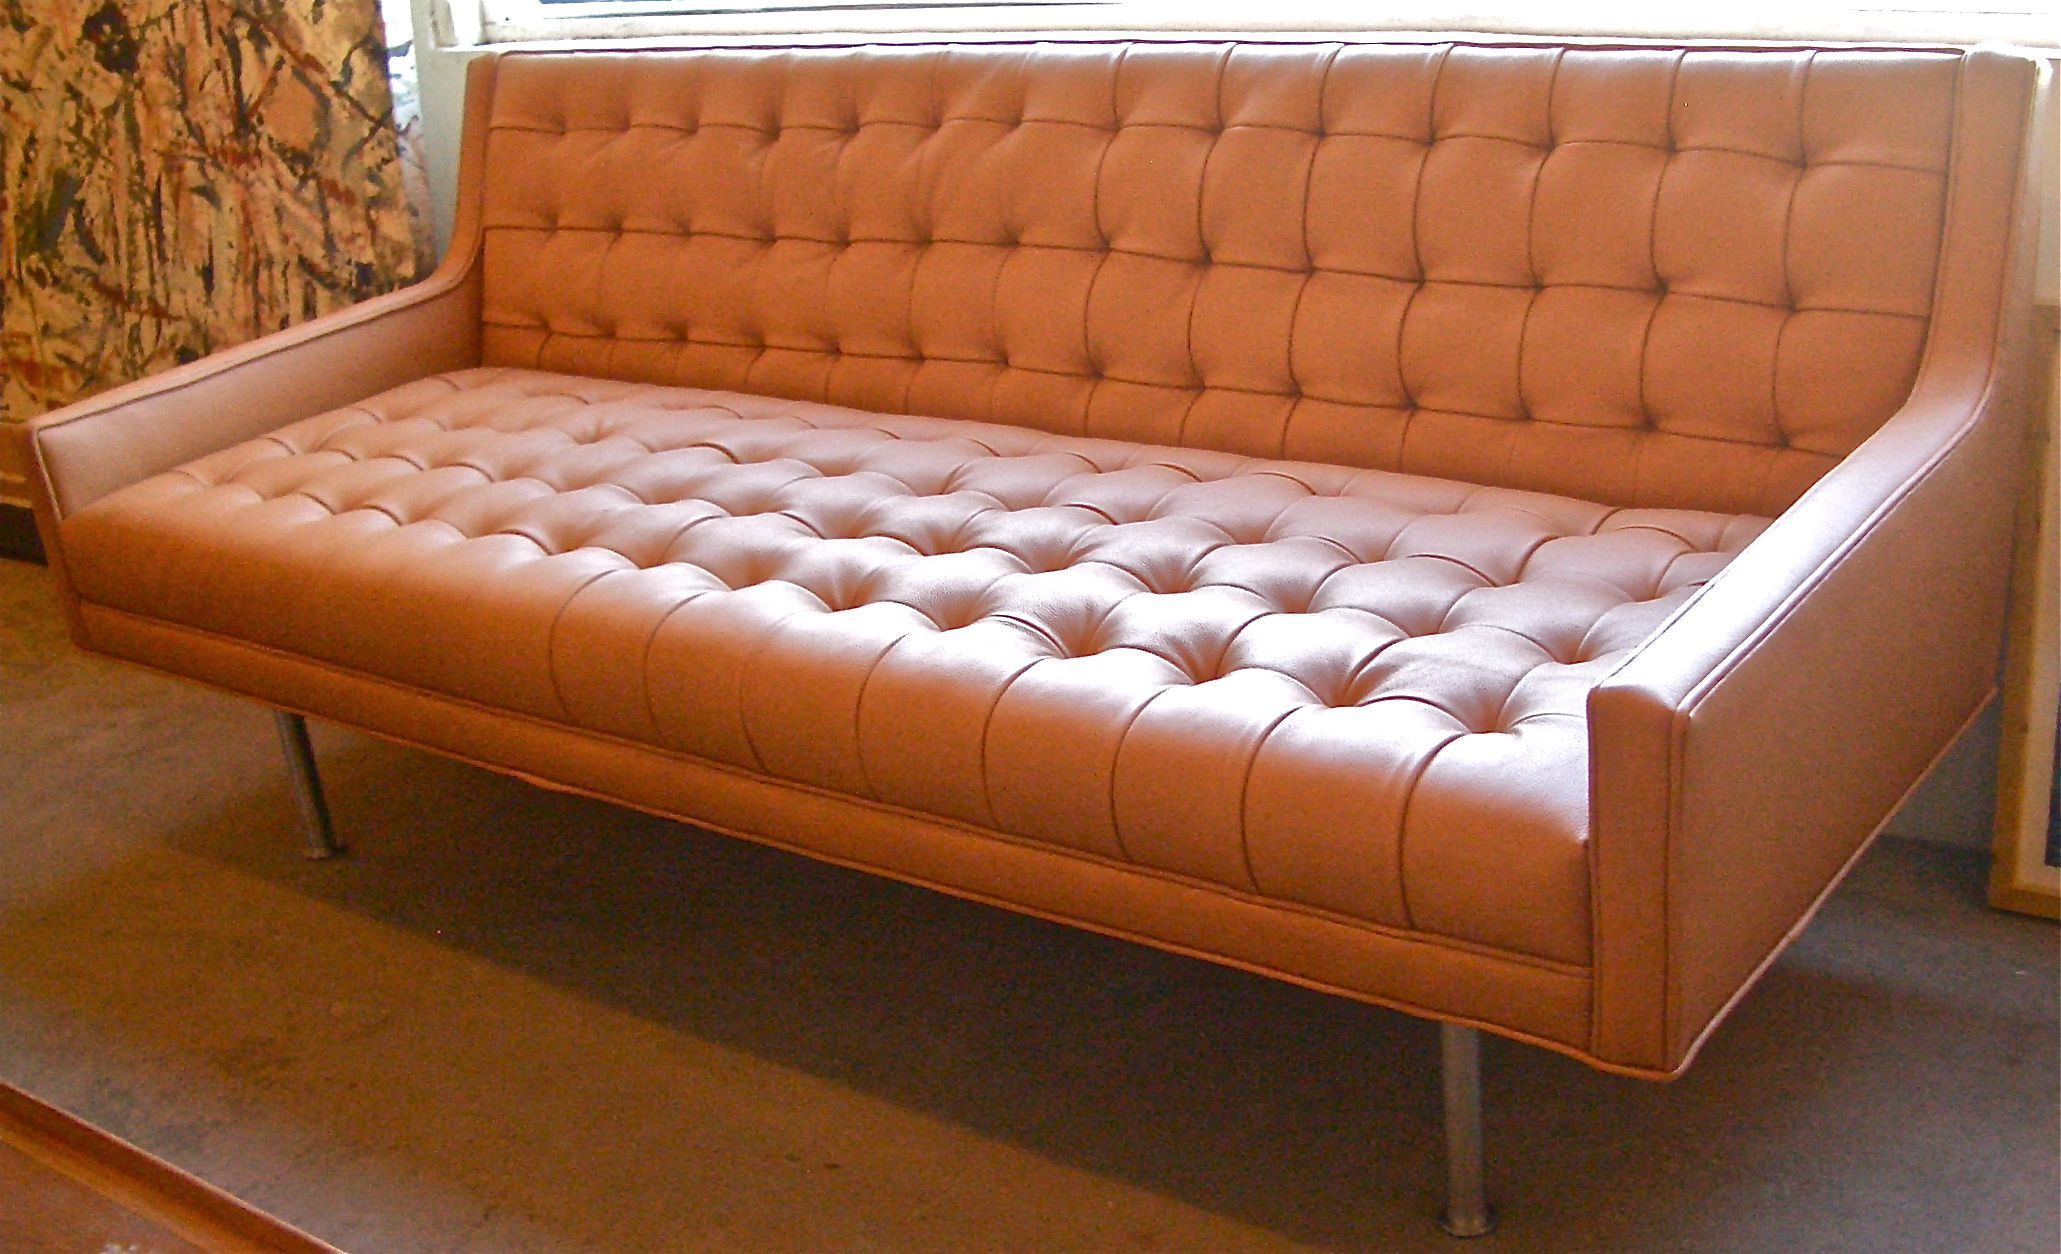 Sensational Design For Mid Century Sofa With Brown Leather Material ...